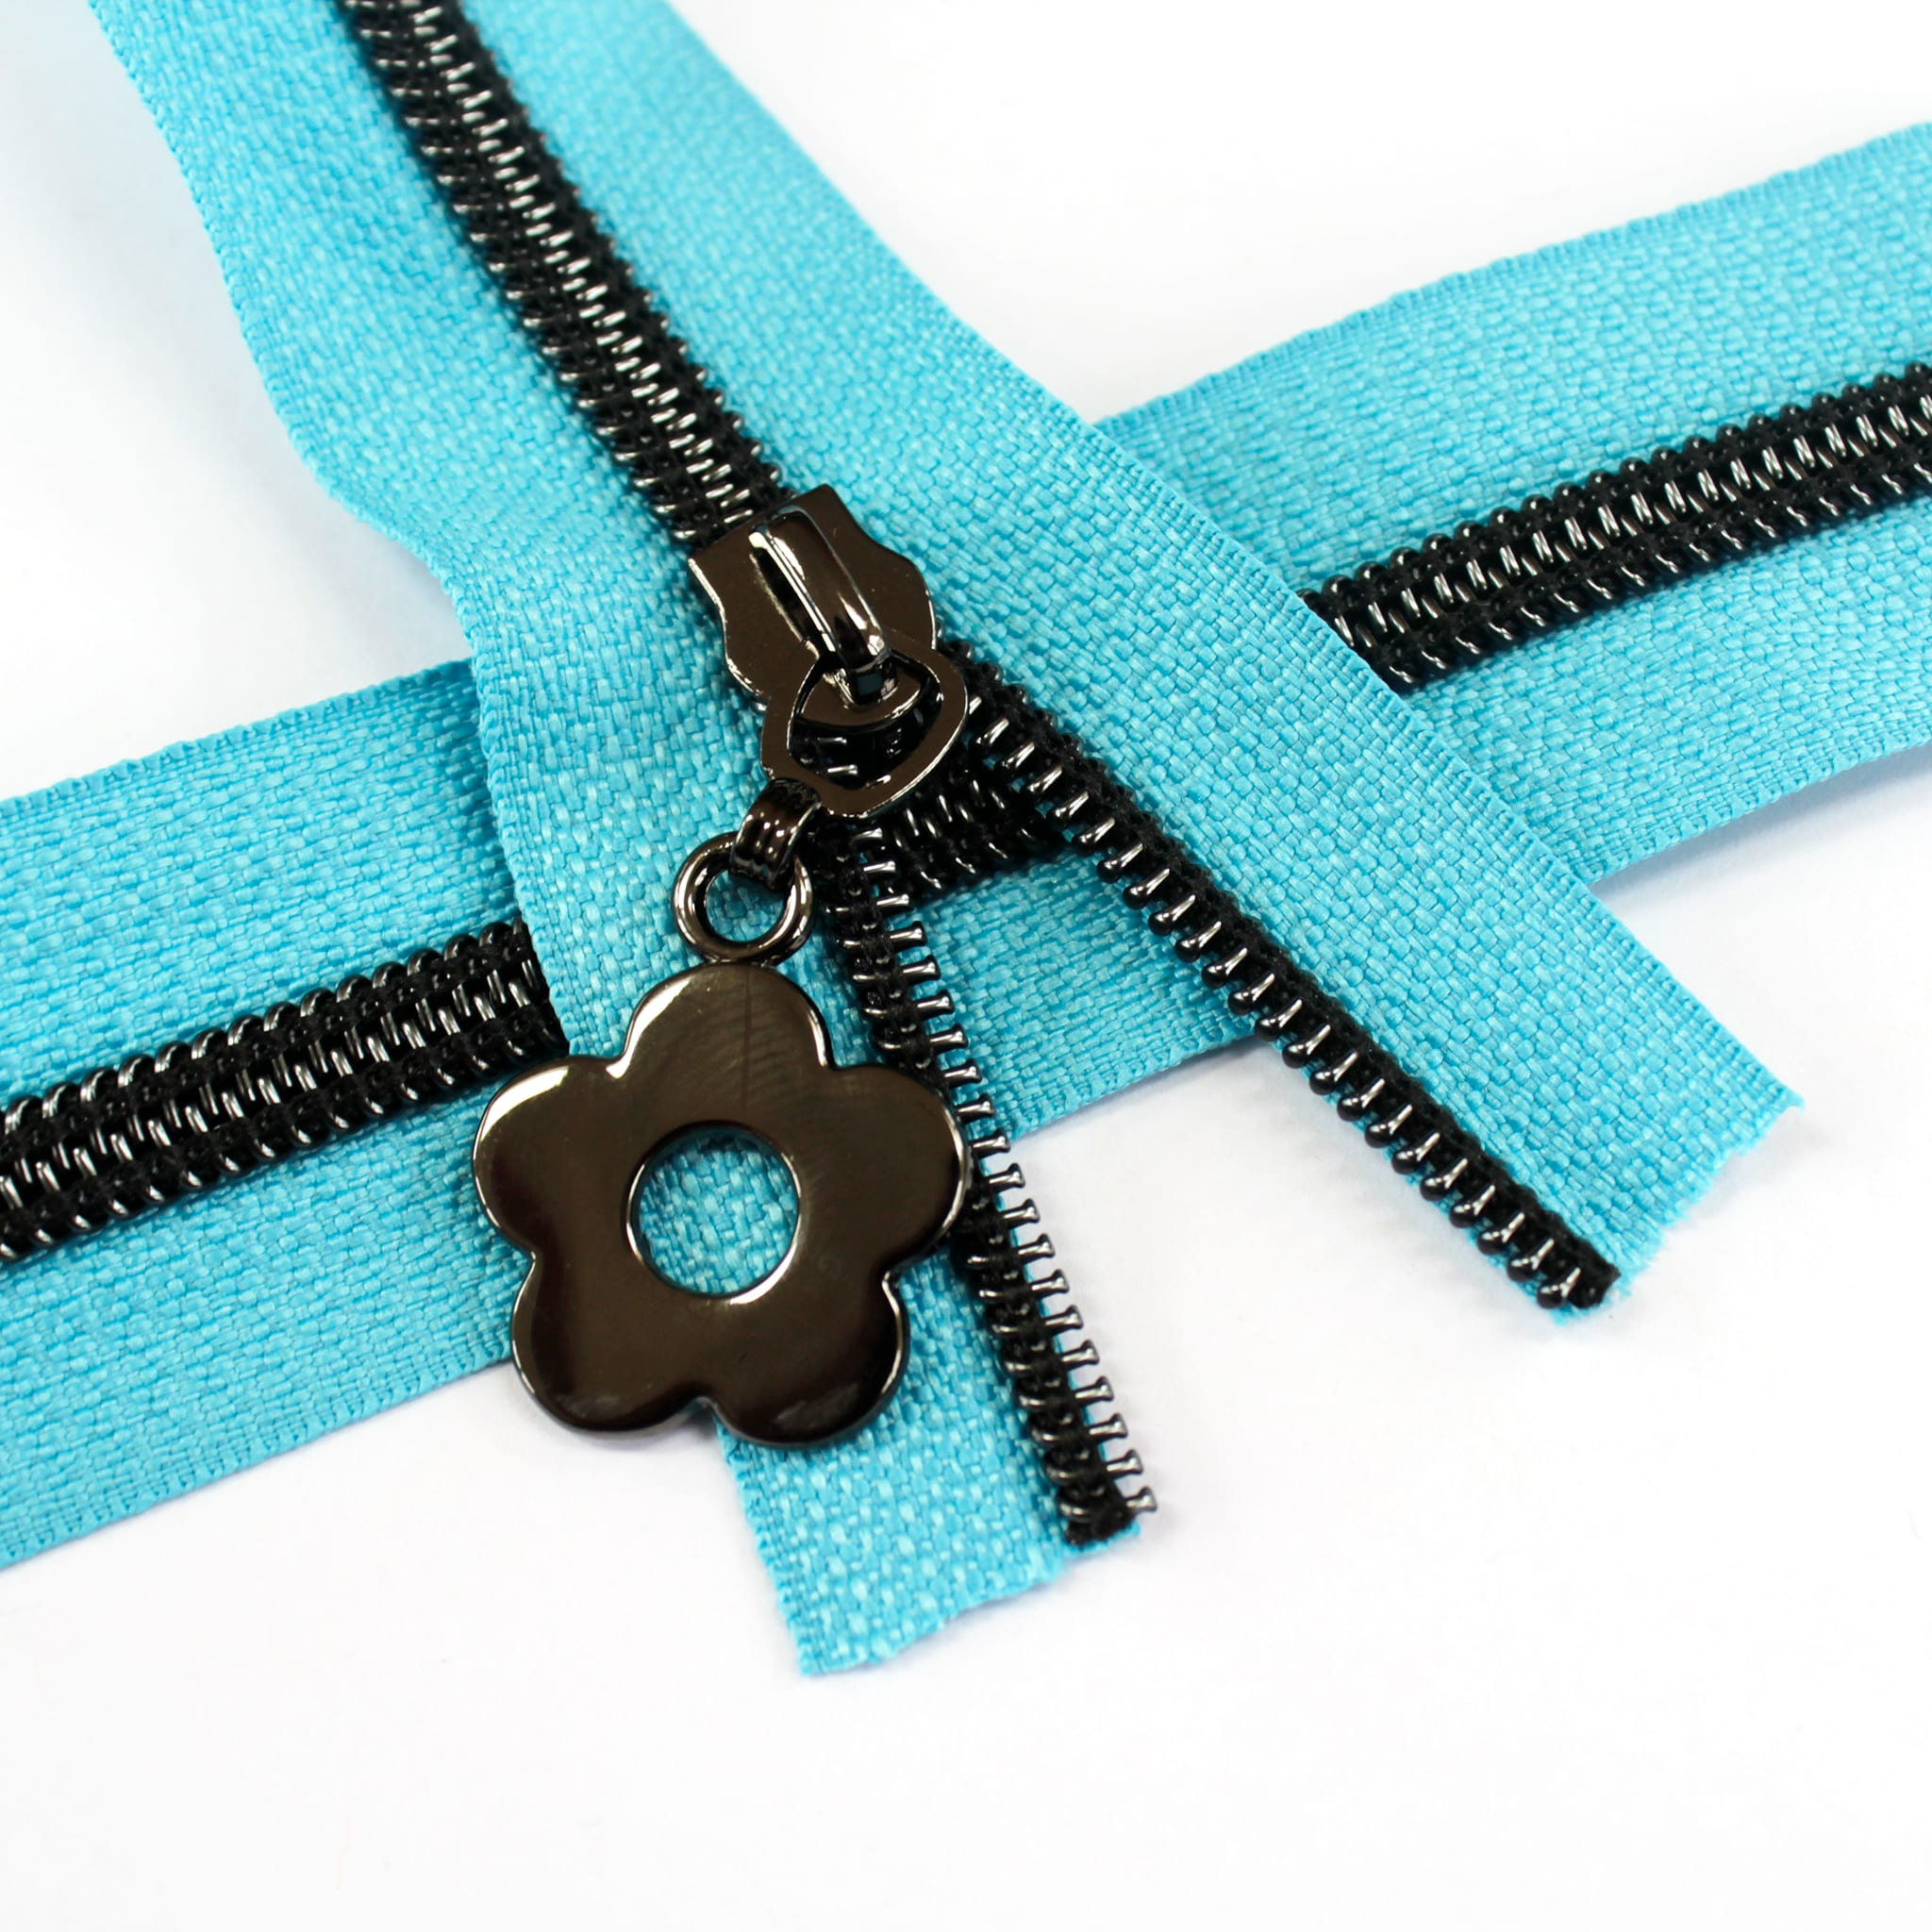 #5-Nylon-Coil-Zipper-turquoise-with-gunmetal-teeth-flower-pulls